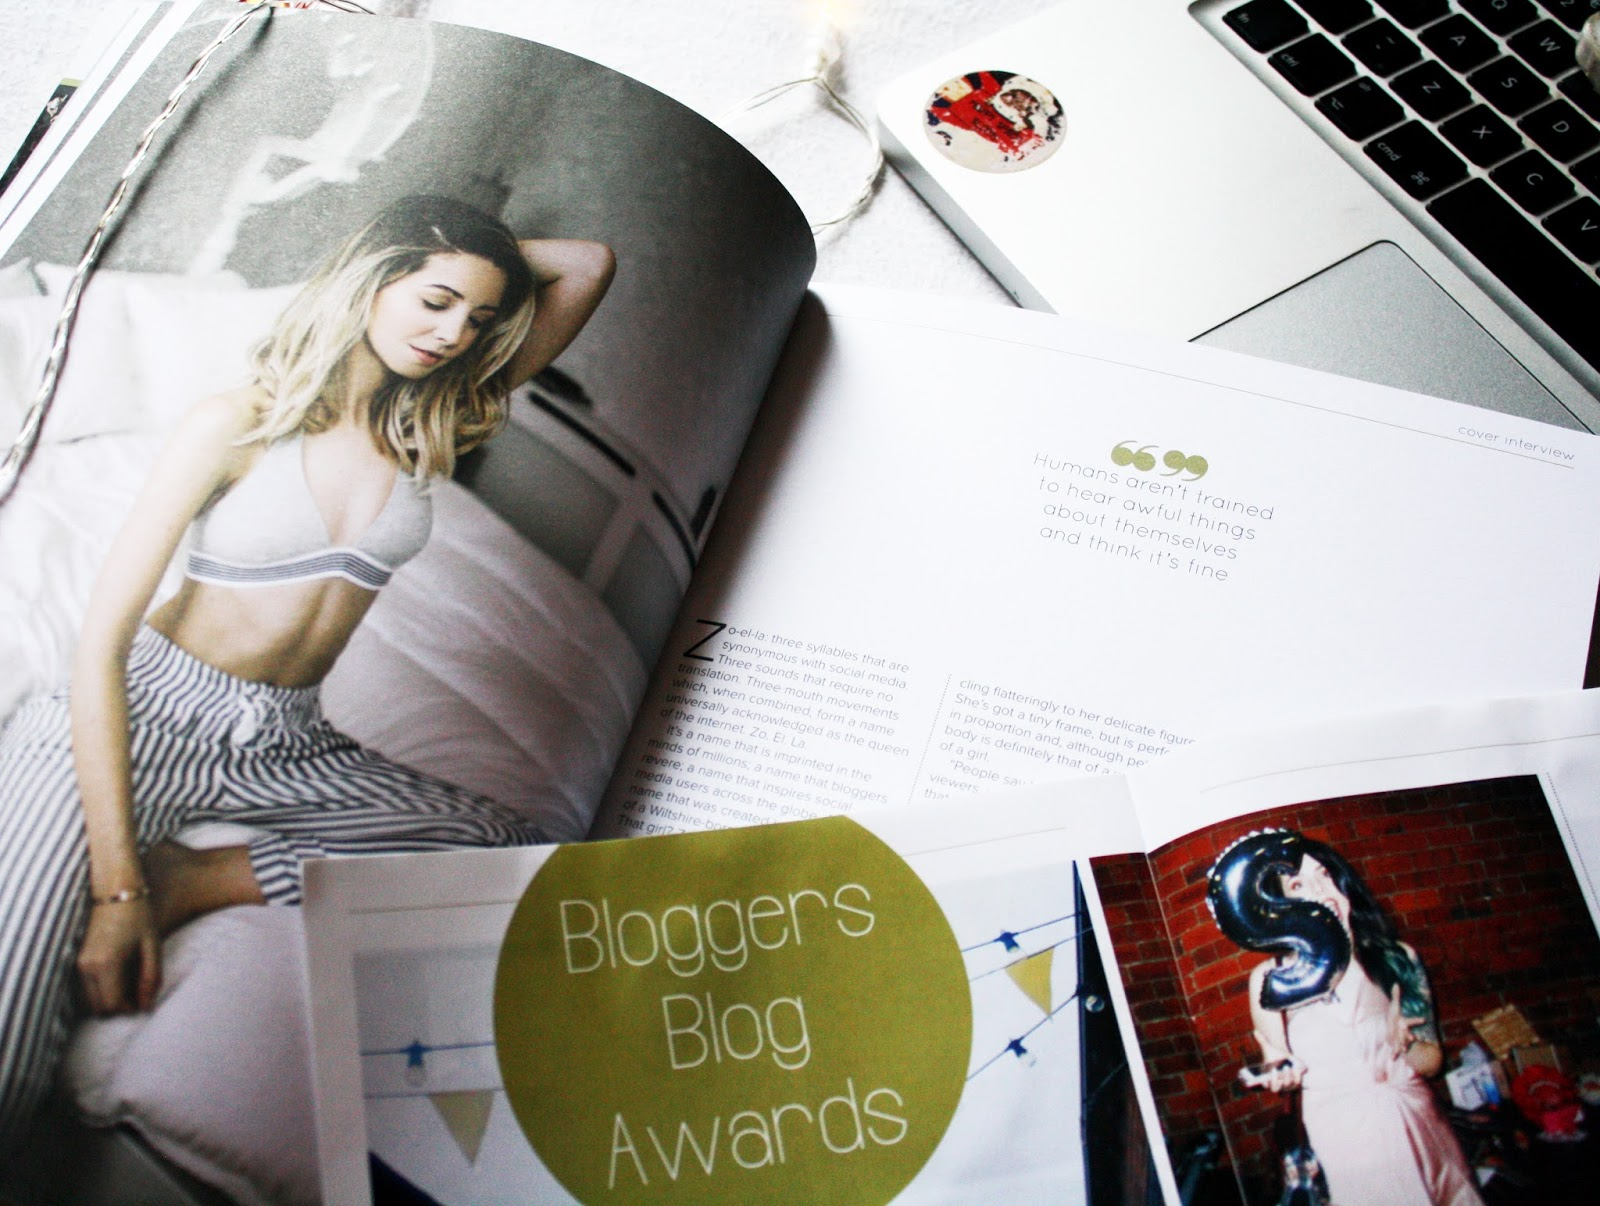 zoella in blogosphere magazine